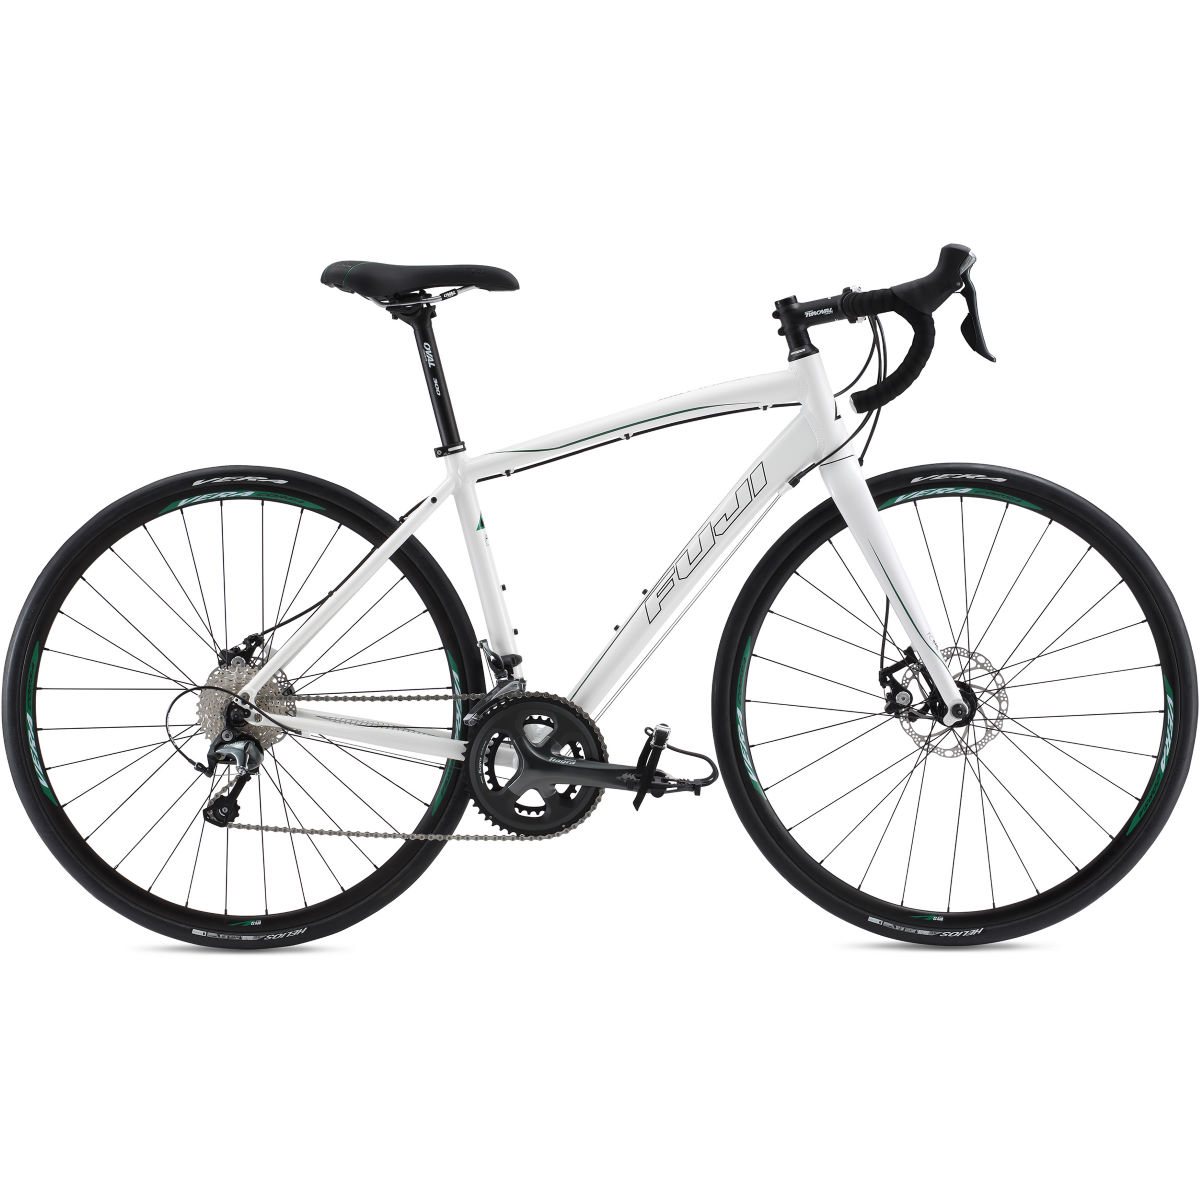 Fuji Finest 1.3 Disc Road Bike (2017) - Bicicletas de carretera